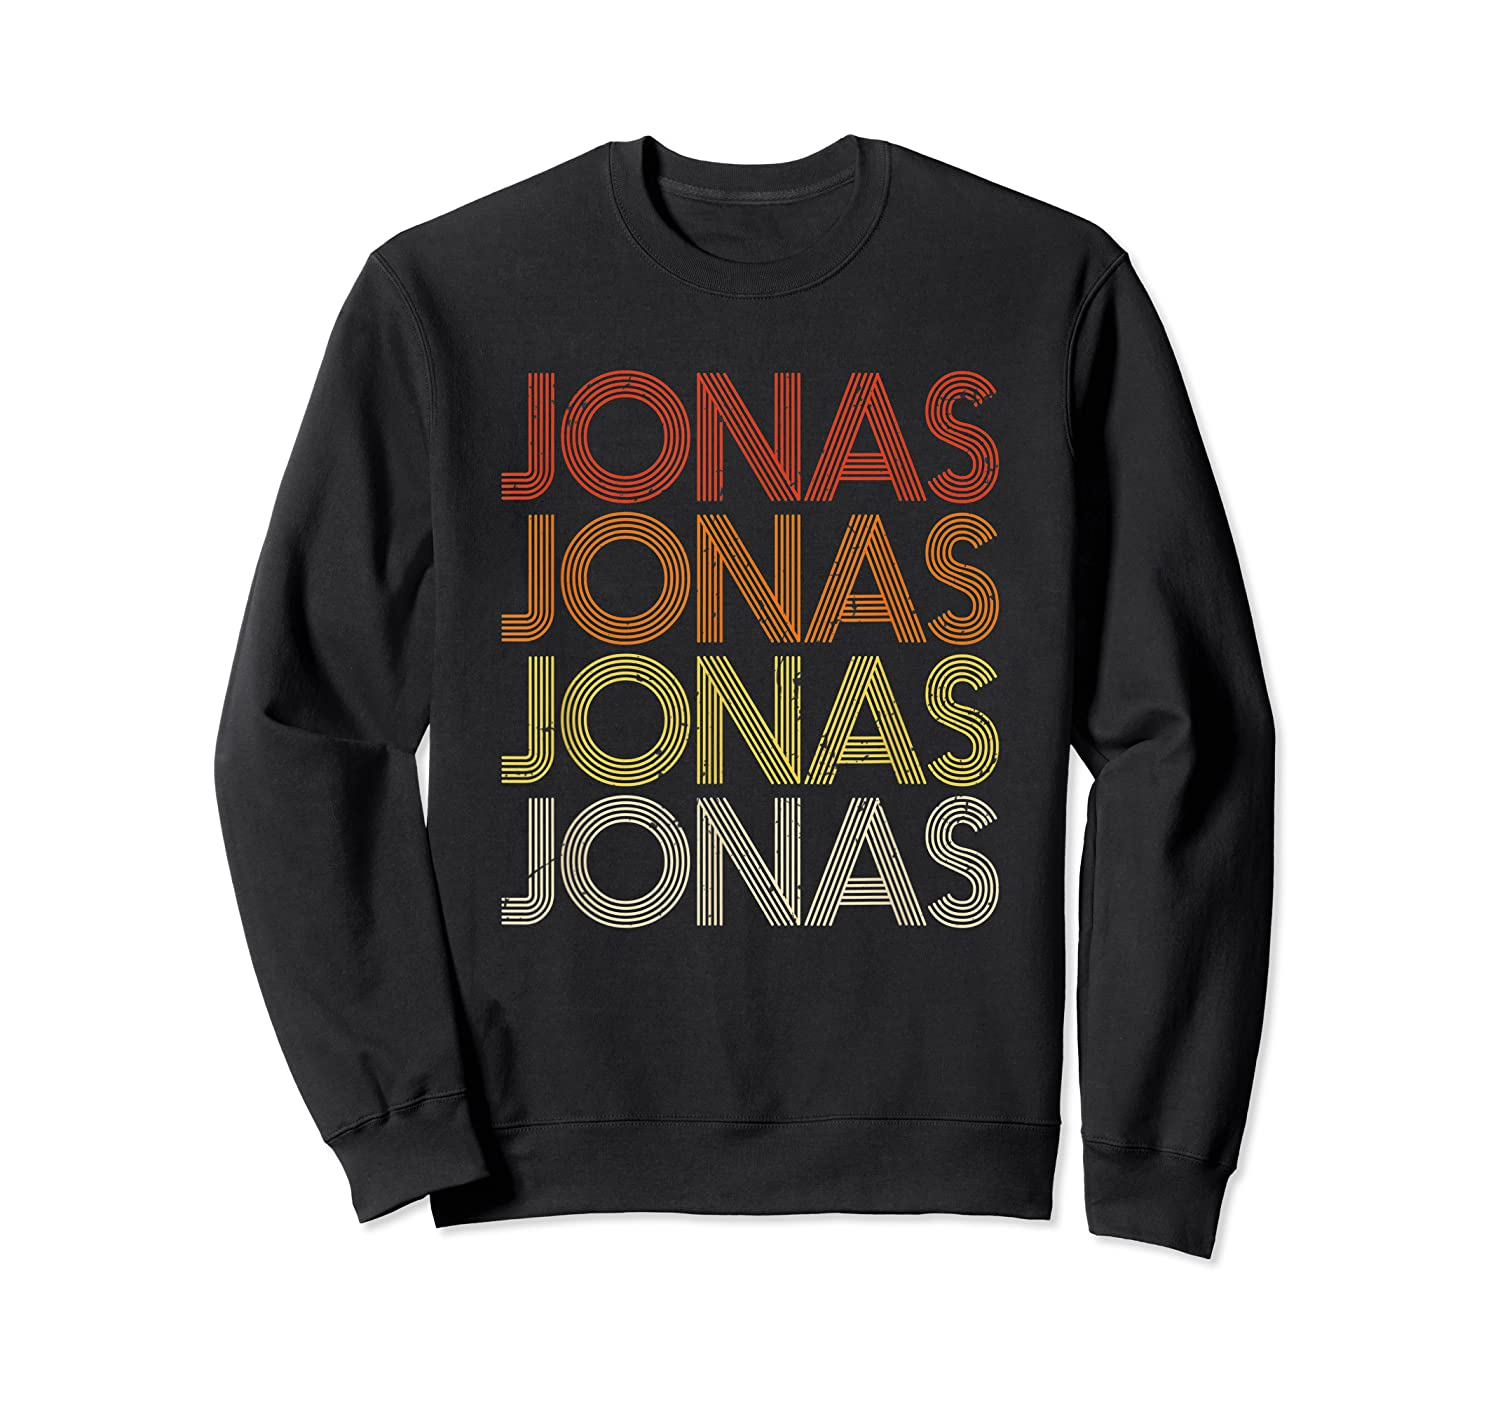 Jonas First Given Name Pride Vintage Style T Shirt Crewneck Sweater